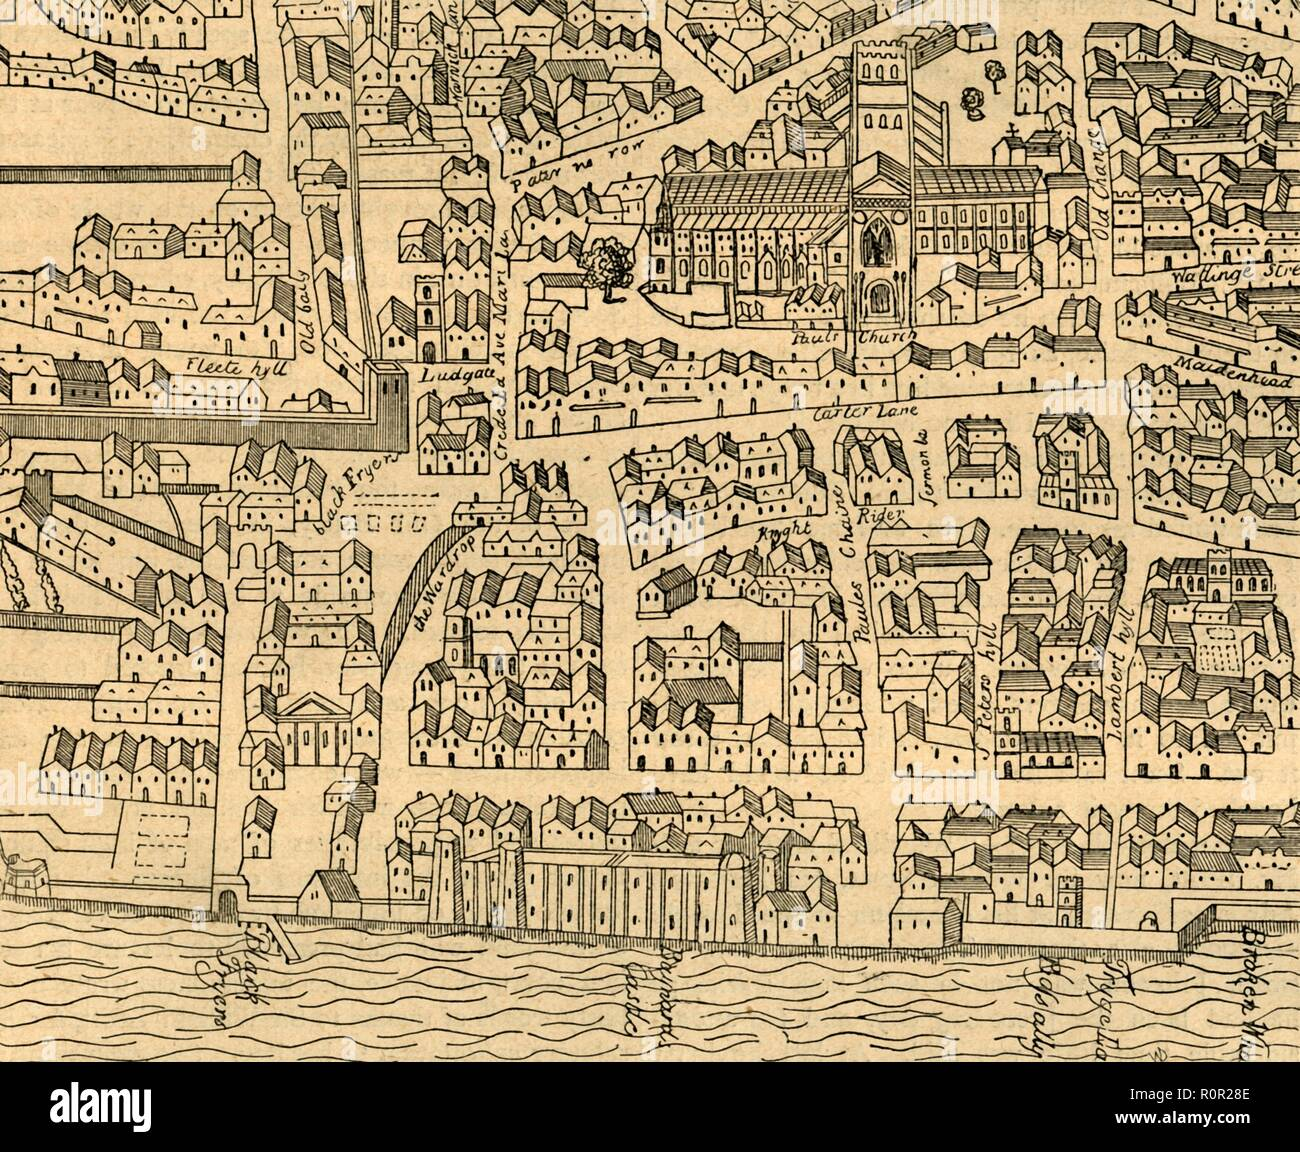 'St. Paul's and Neighbourhood', (1897). Map based on Aggas's plan of 1563, showing St Paul's Cathedral in the City of London. Also marked are the old city walls and Ludgate, with the River Thames at the bottom. From Old and New London, Volume I, by Walter Thornbury. [Cassell and Company, Limited, London, Paris & Melbourne, 1897] Stock Photo